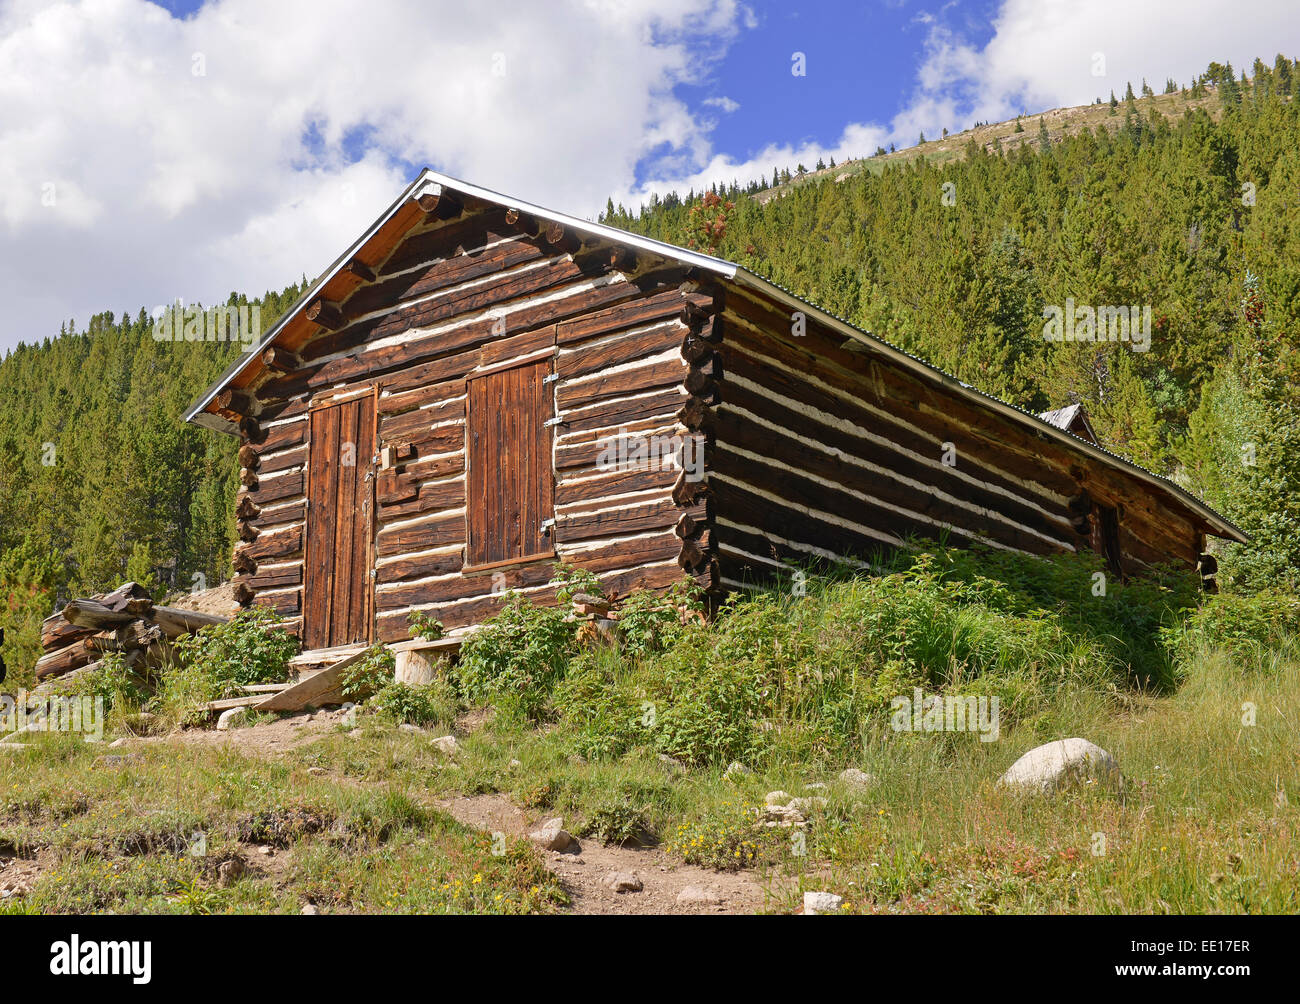 Marvelous photograph of Vintage Log Cabin In Old Mining Town Colorado Stock Photo Royalty  with #2C459F color and 1300x1004 pixels